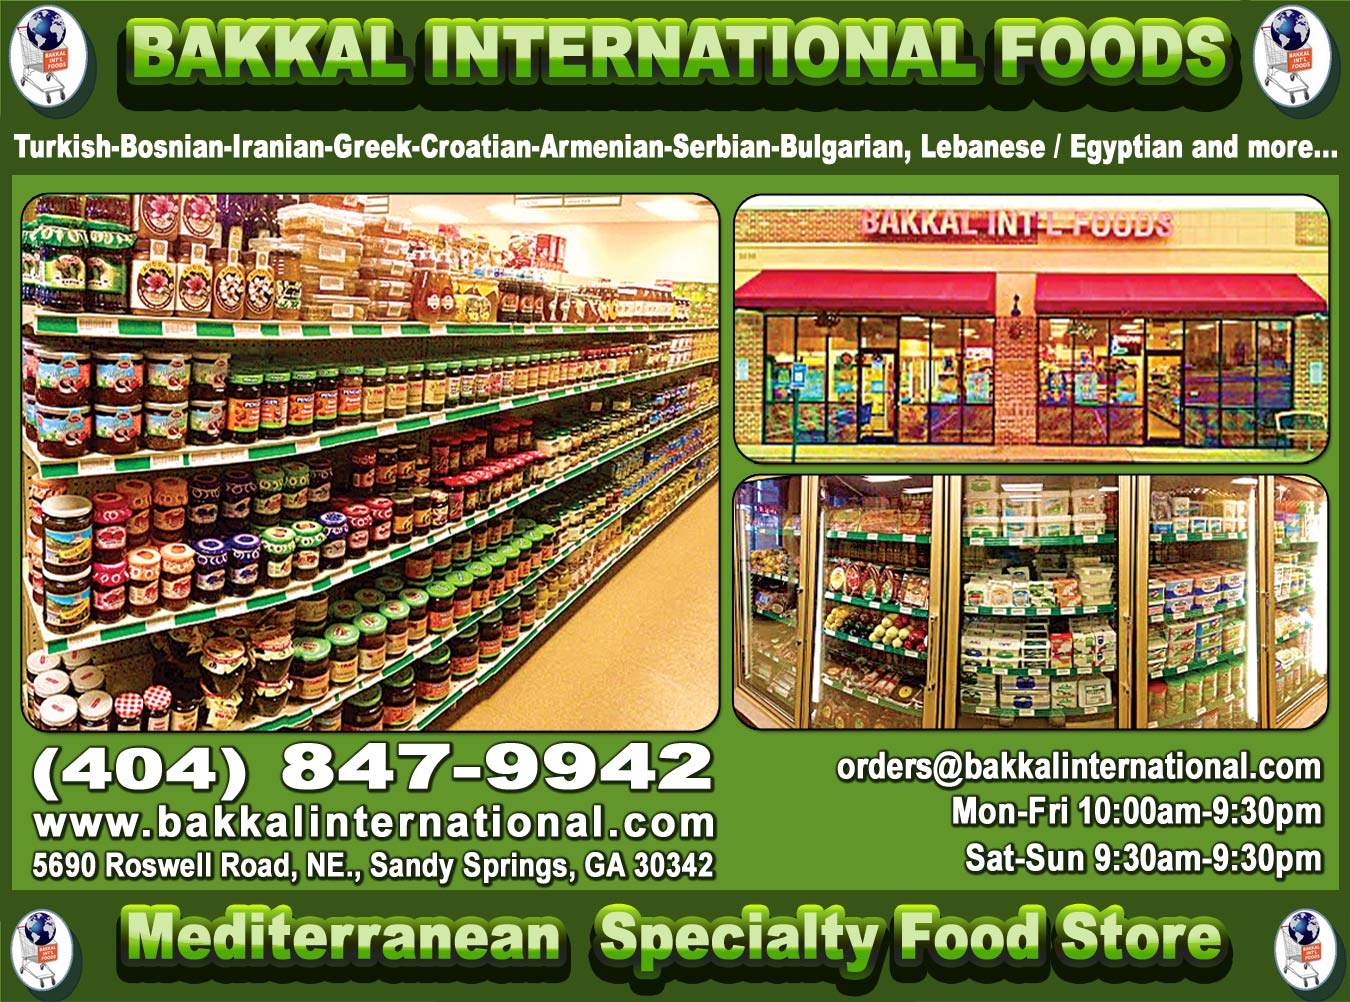 bakkal-international-foods.jpg